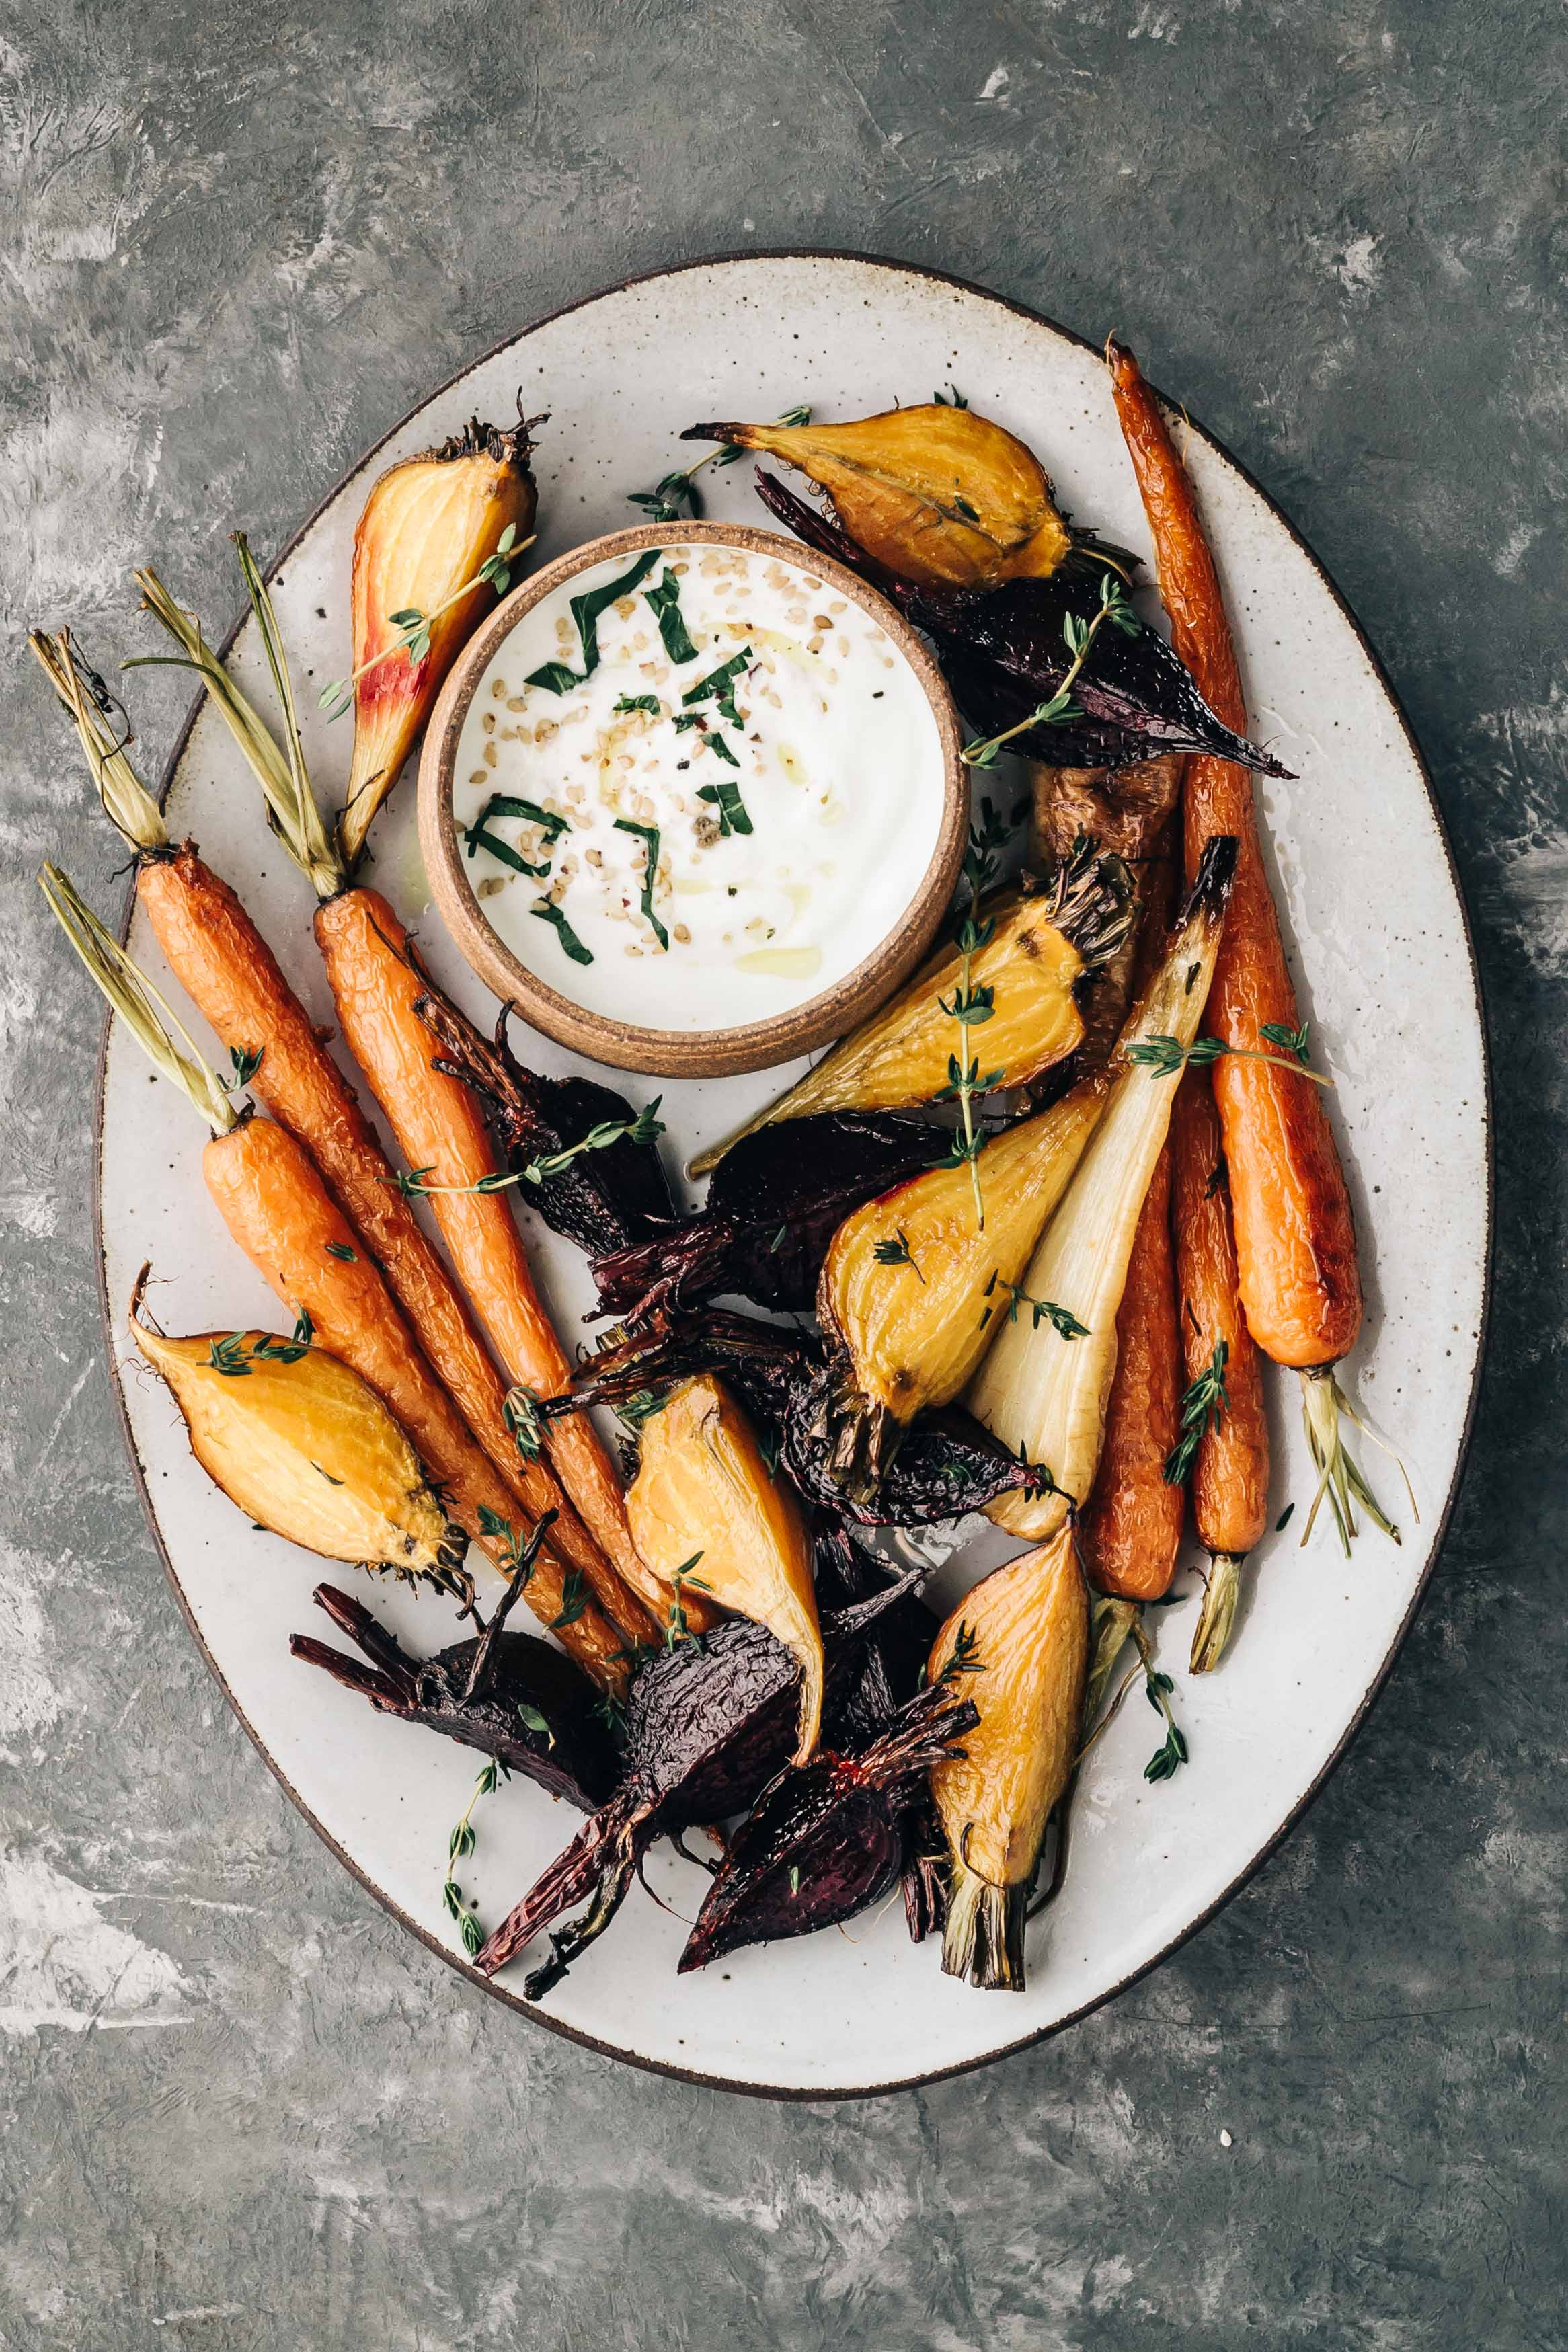 Roasted Beets and Carrots with Miso-Yogurt